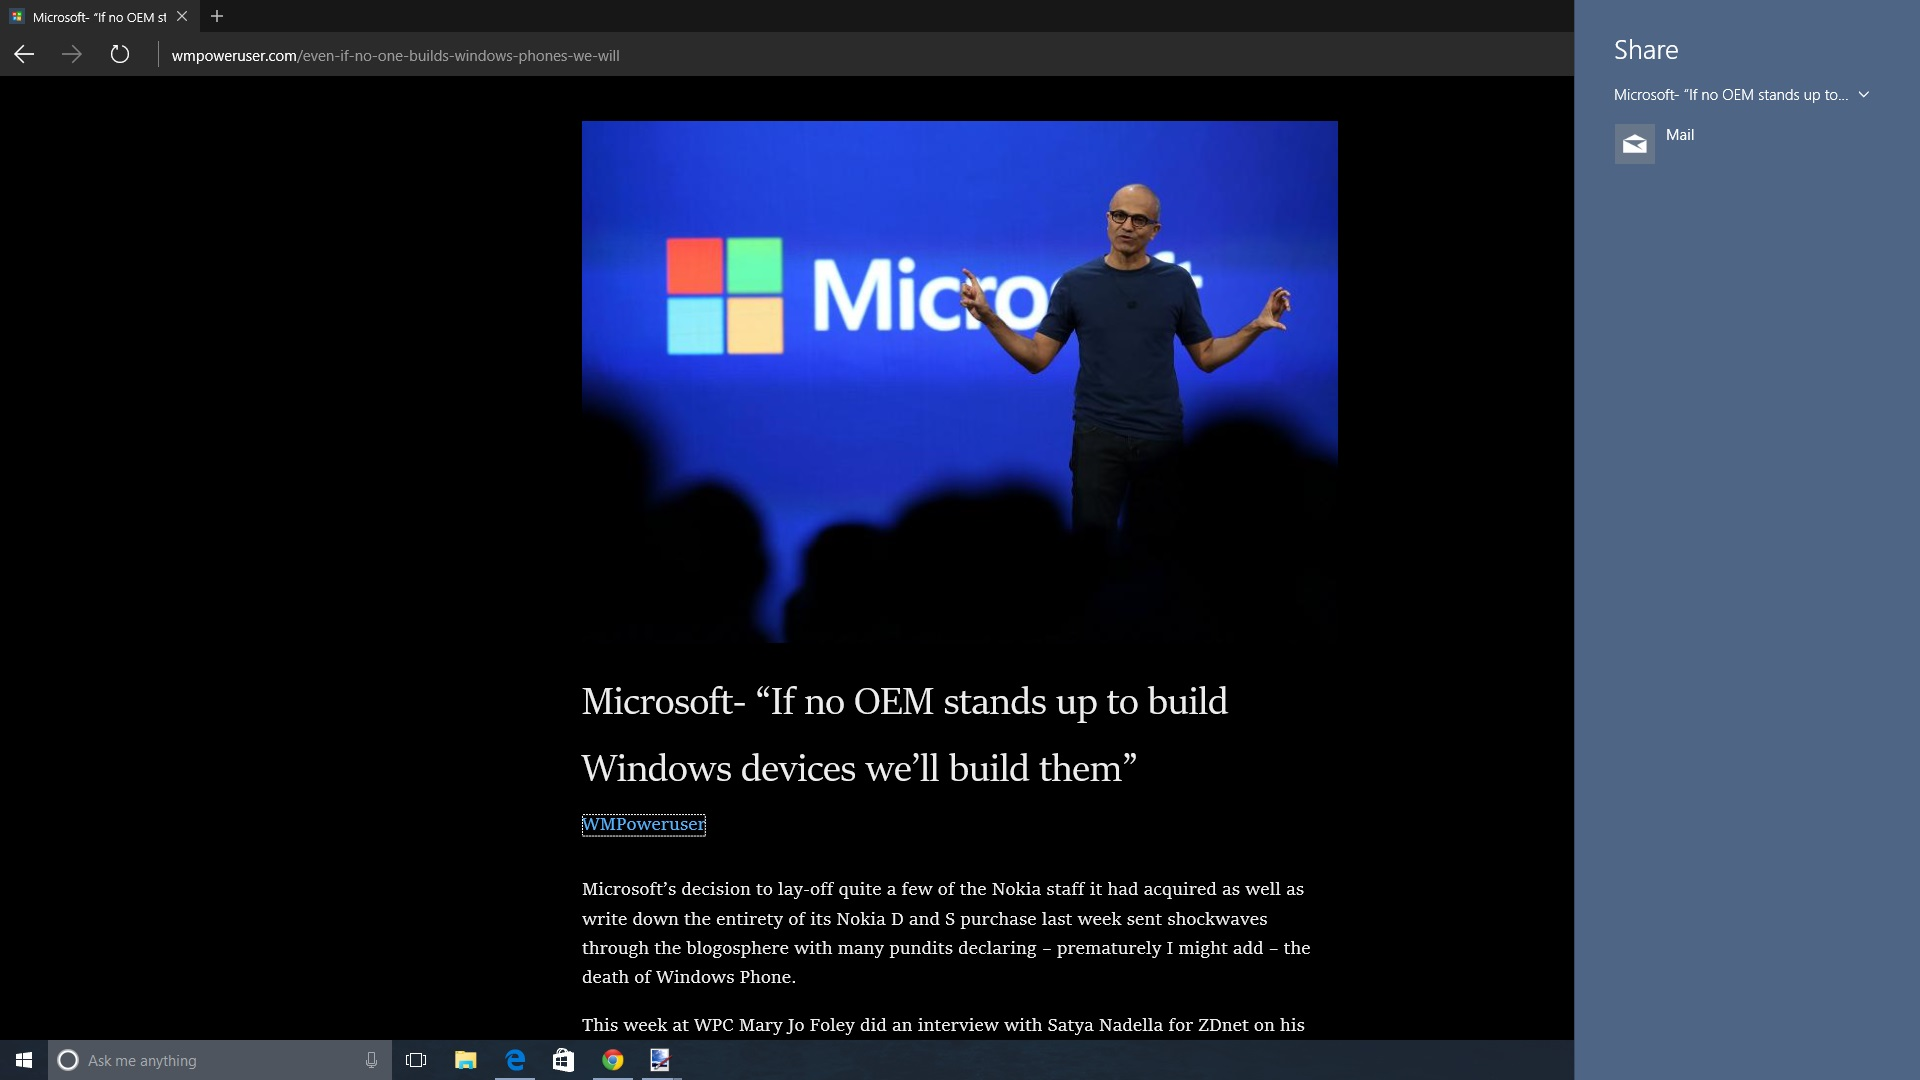 Hands-on with Windows 10 Build 10240 (RTM) 22